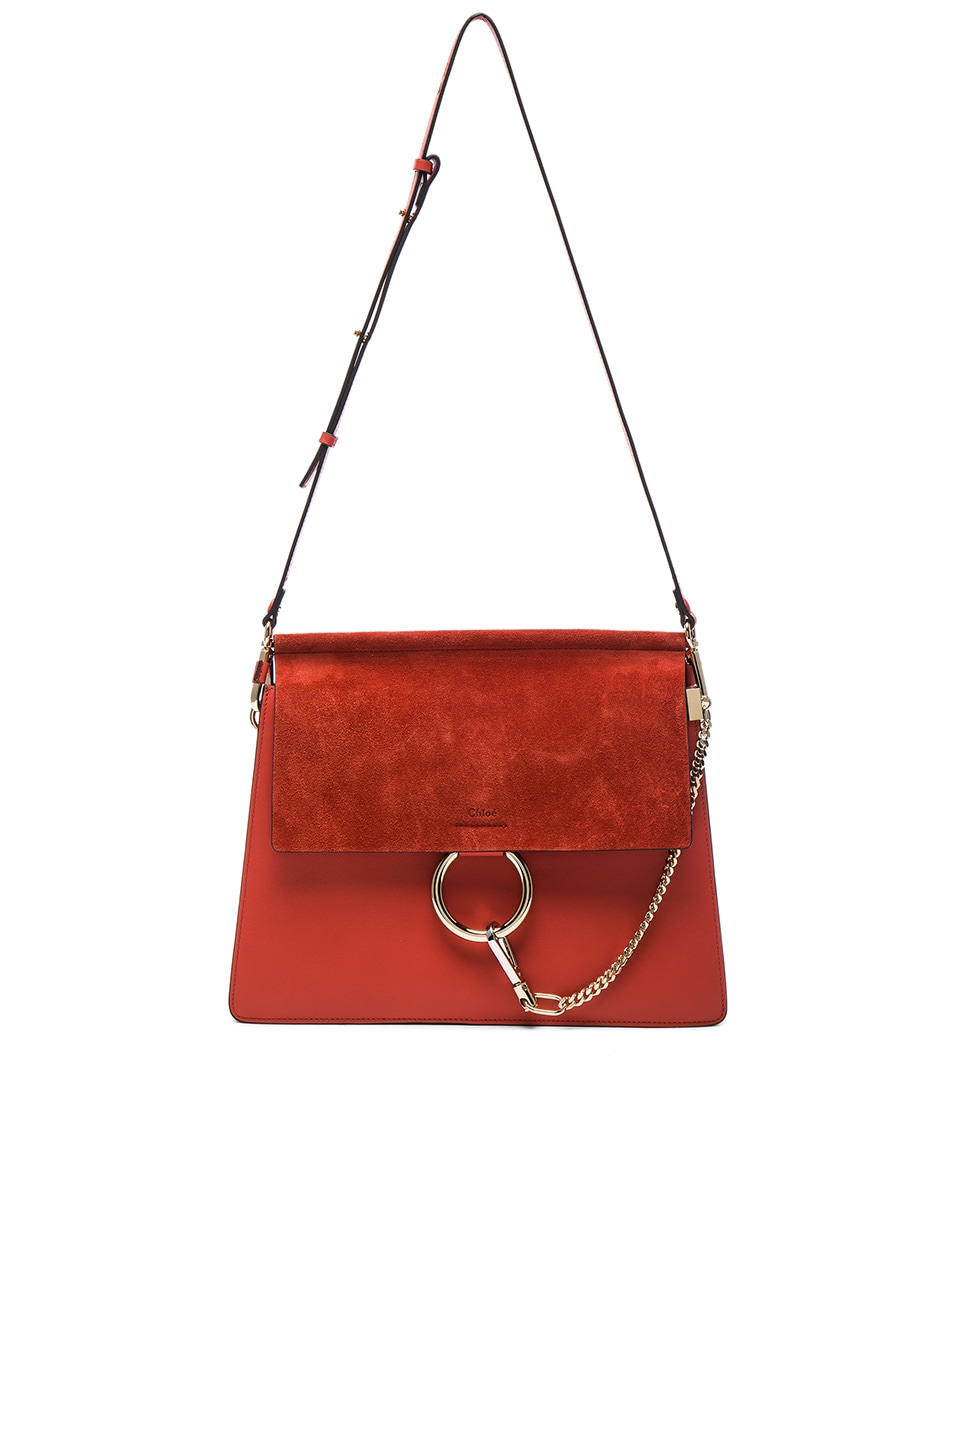 Image 5 of Chloe Medium Leather Faye Shoulder Bag in Sepia Red